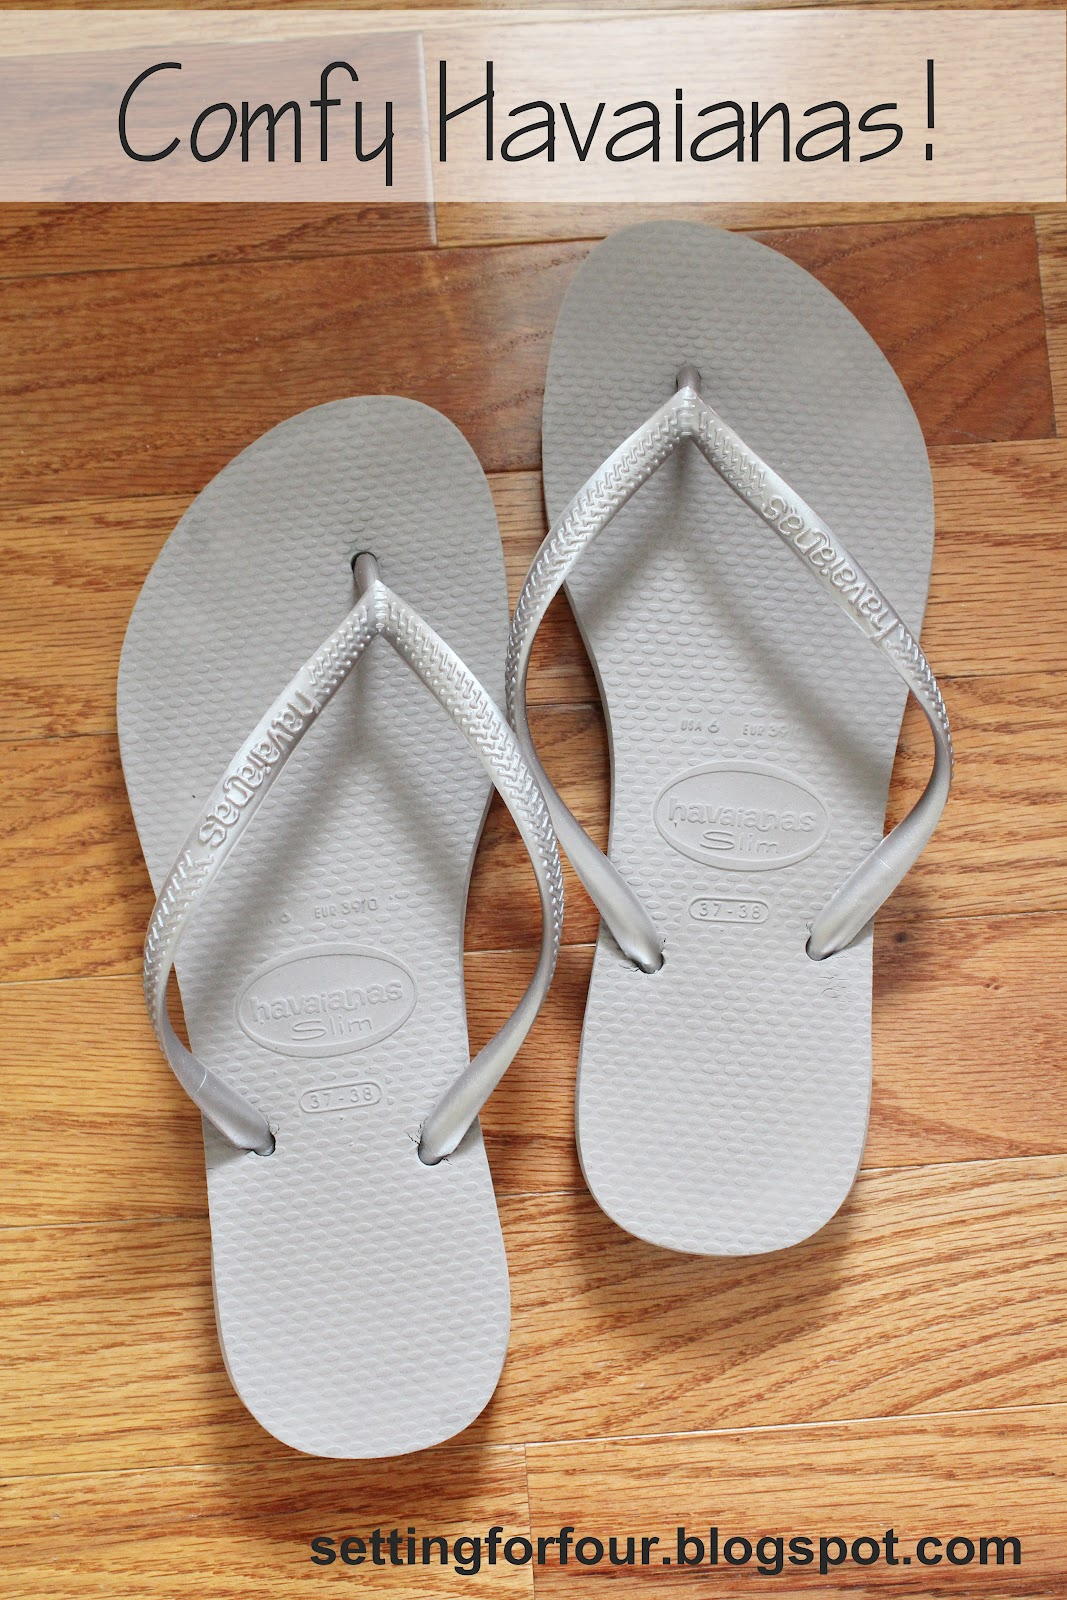 924ef18d17da7 What I Love  My Havaiana s - Setting for Four